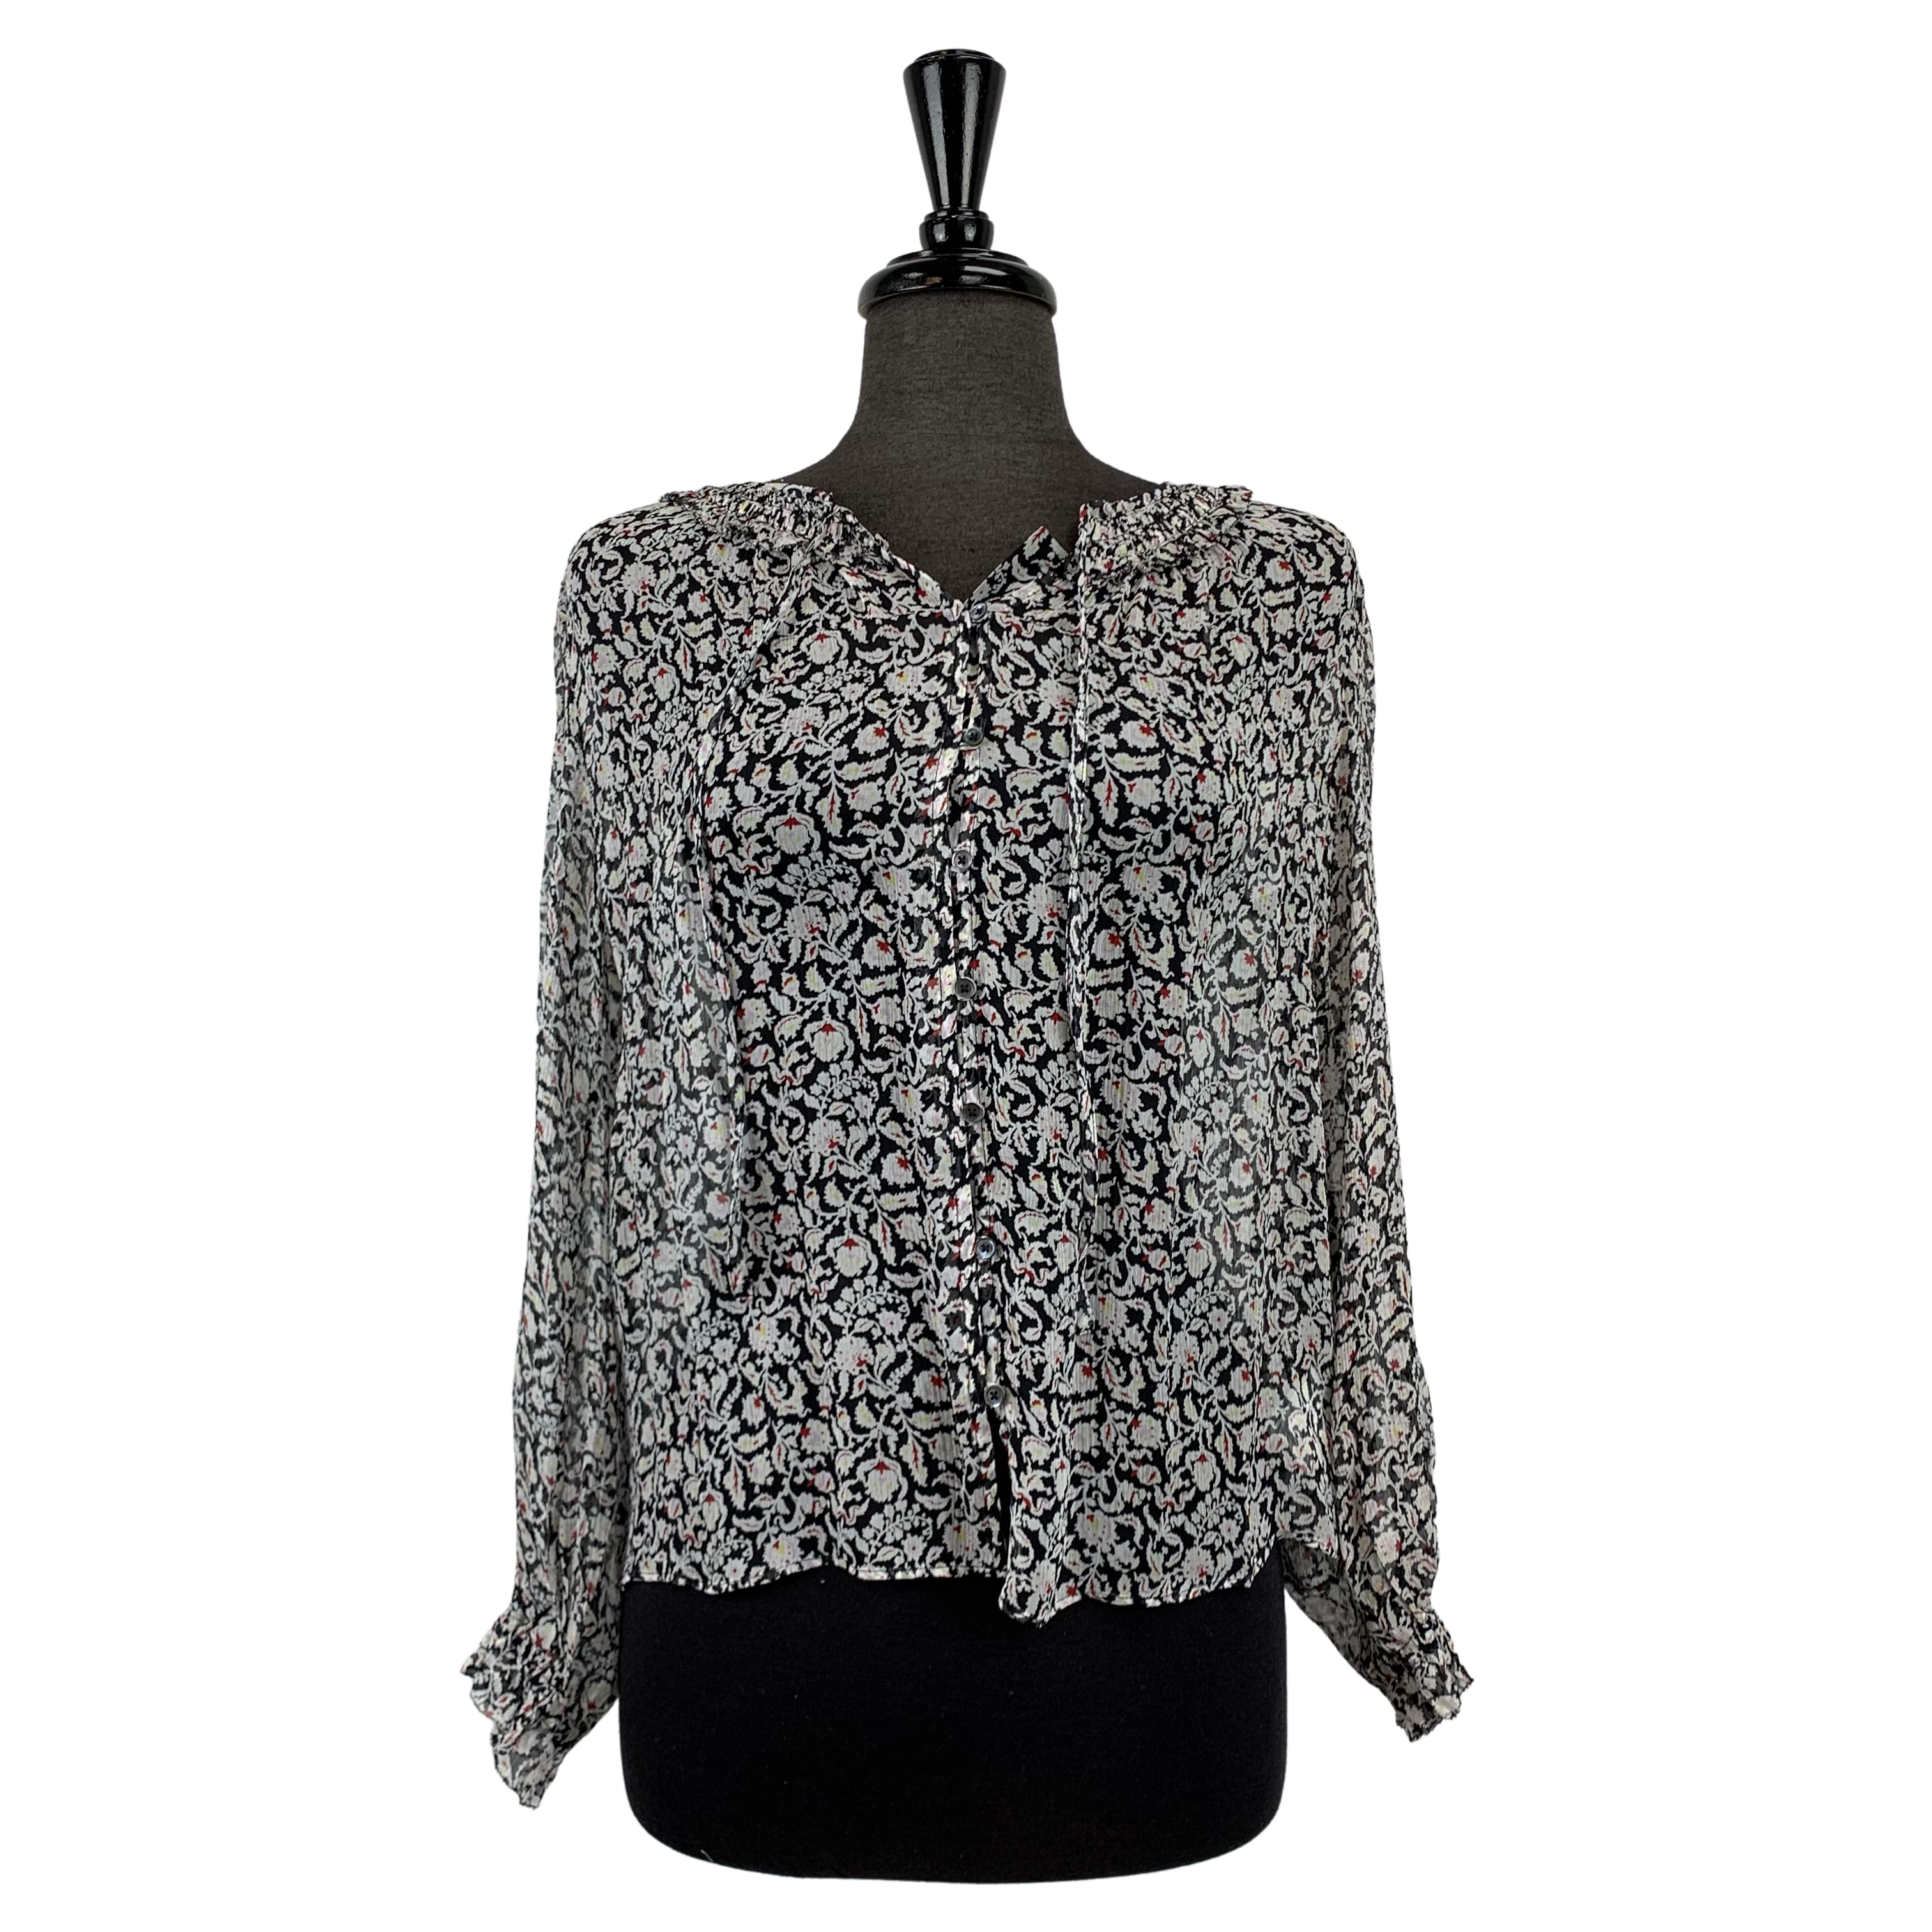 Joie Floral Silk Blouse - Chic Thrills Boutique